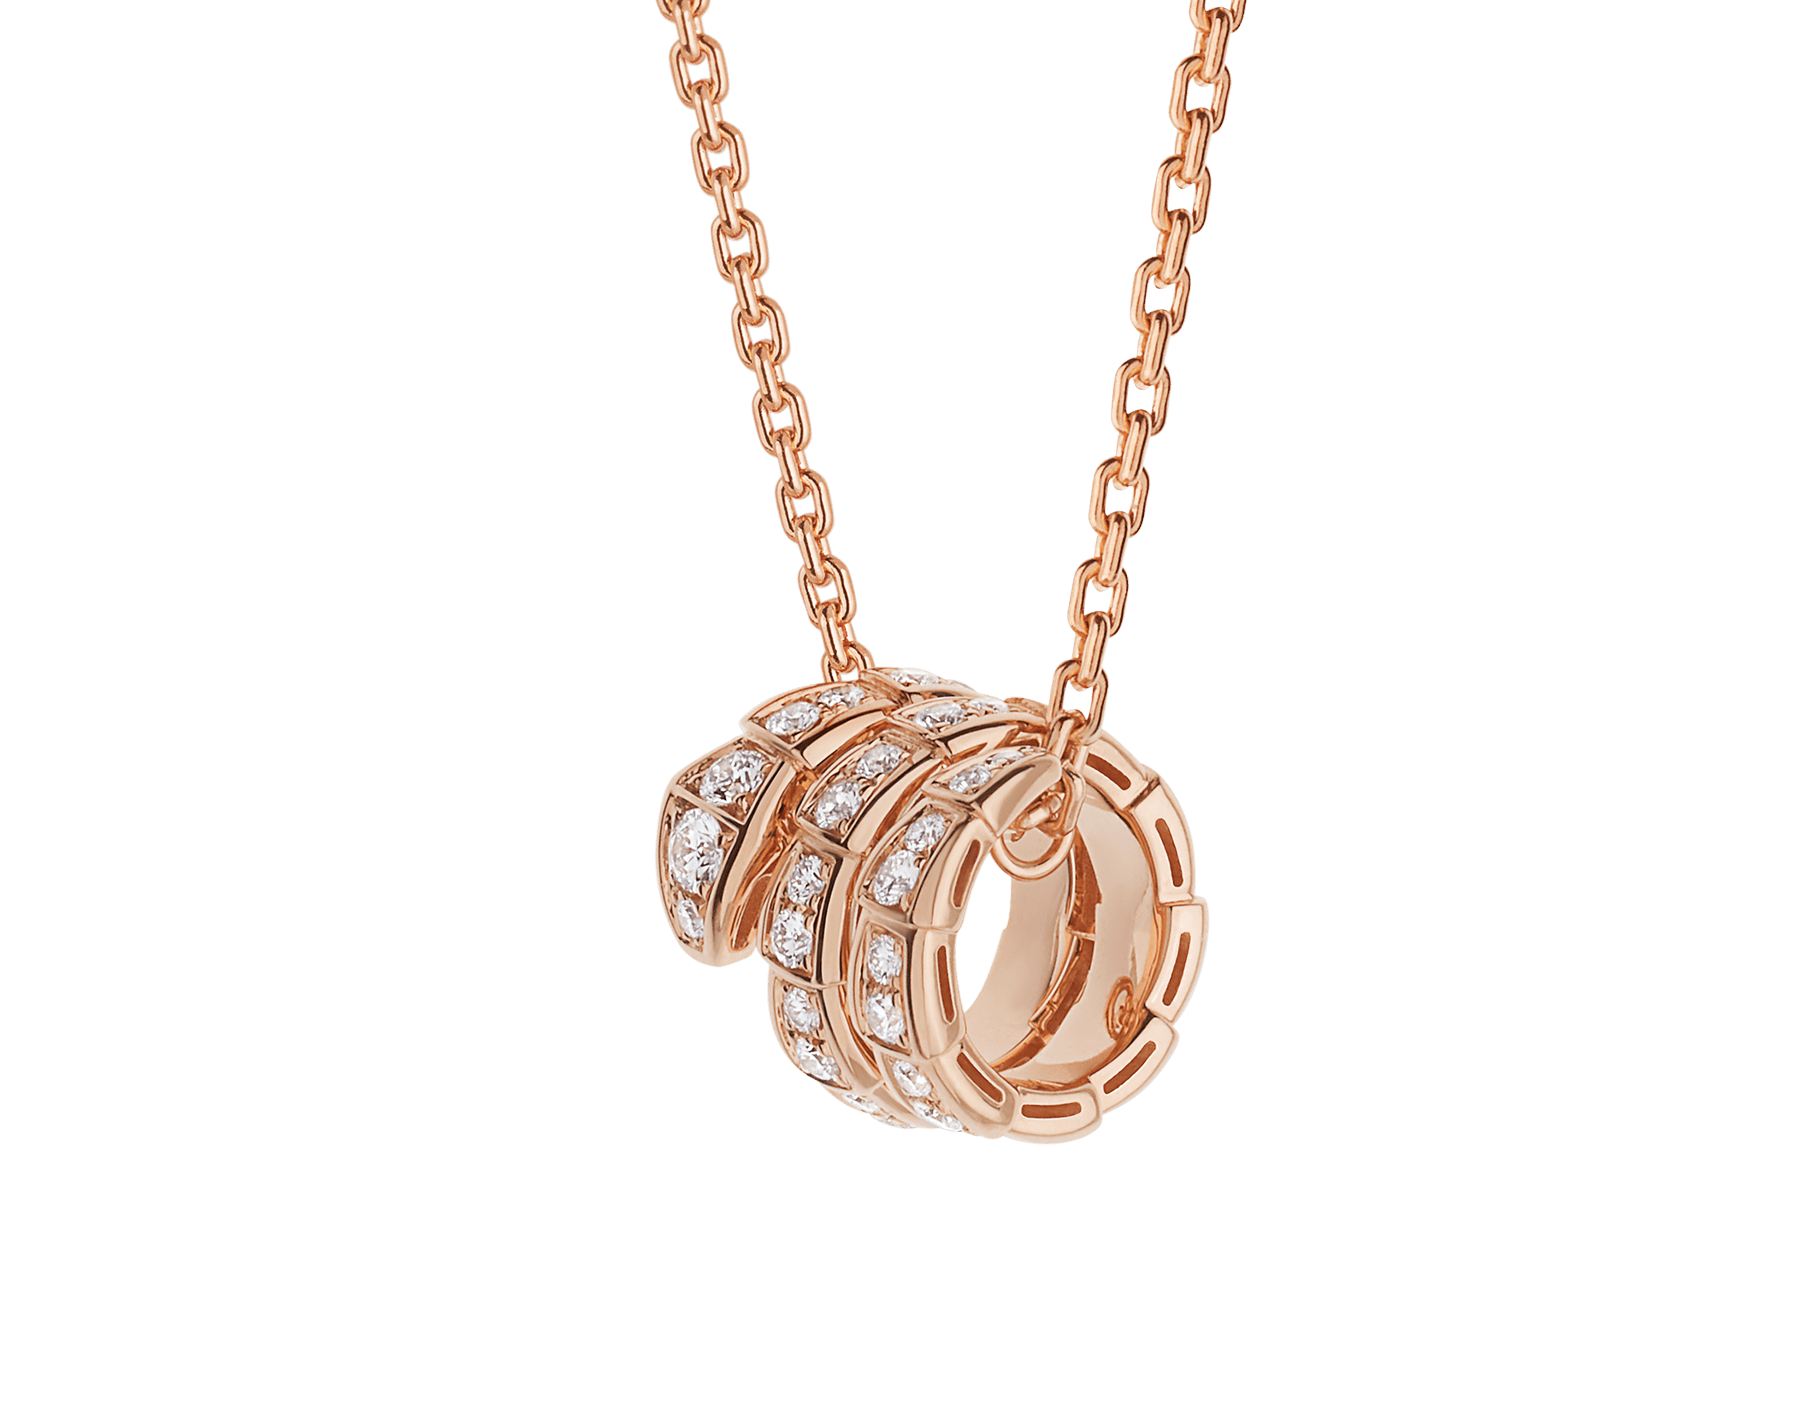 Serpenti Viper pendant necklace in 18 kt rose gold set with pavé diamonds 357795 image 1